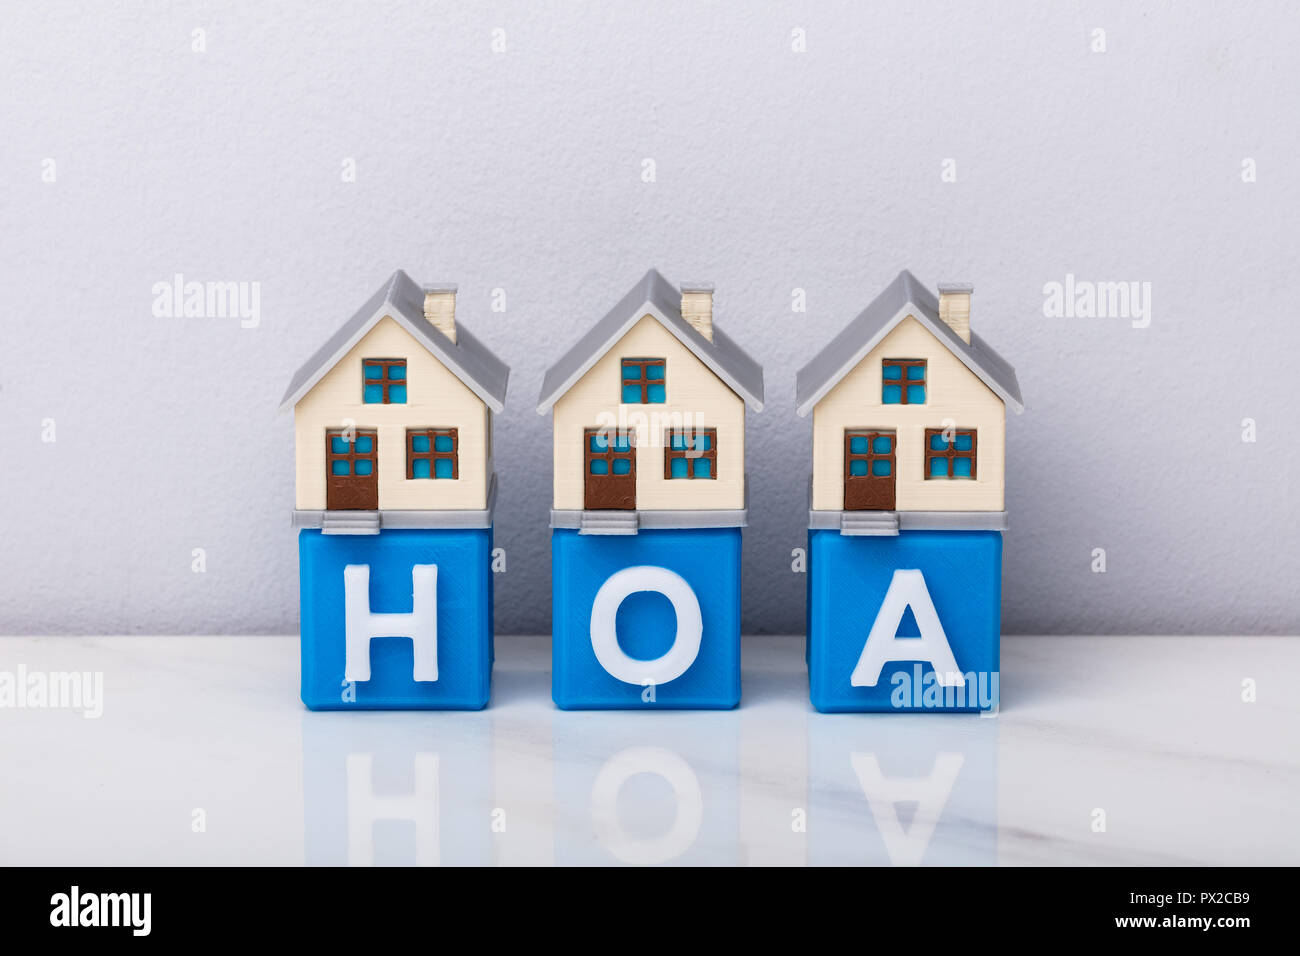 Row Of House Models On Blue HOA Cubic Blocks Over Reflective Desk - Stock Image